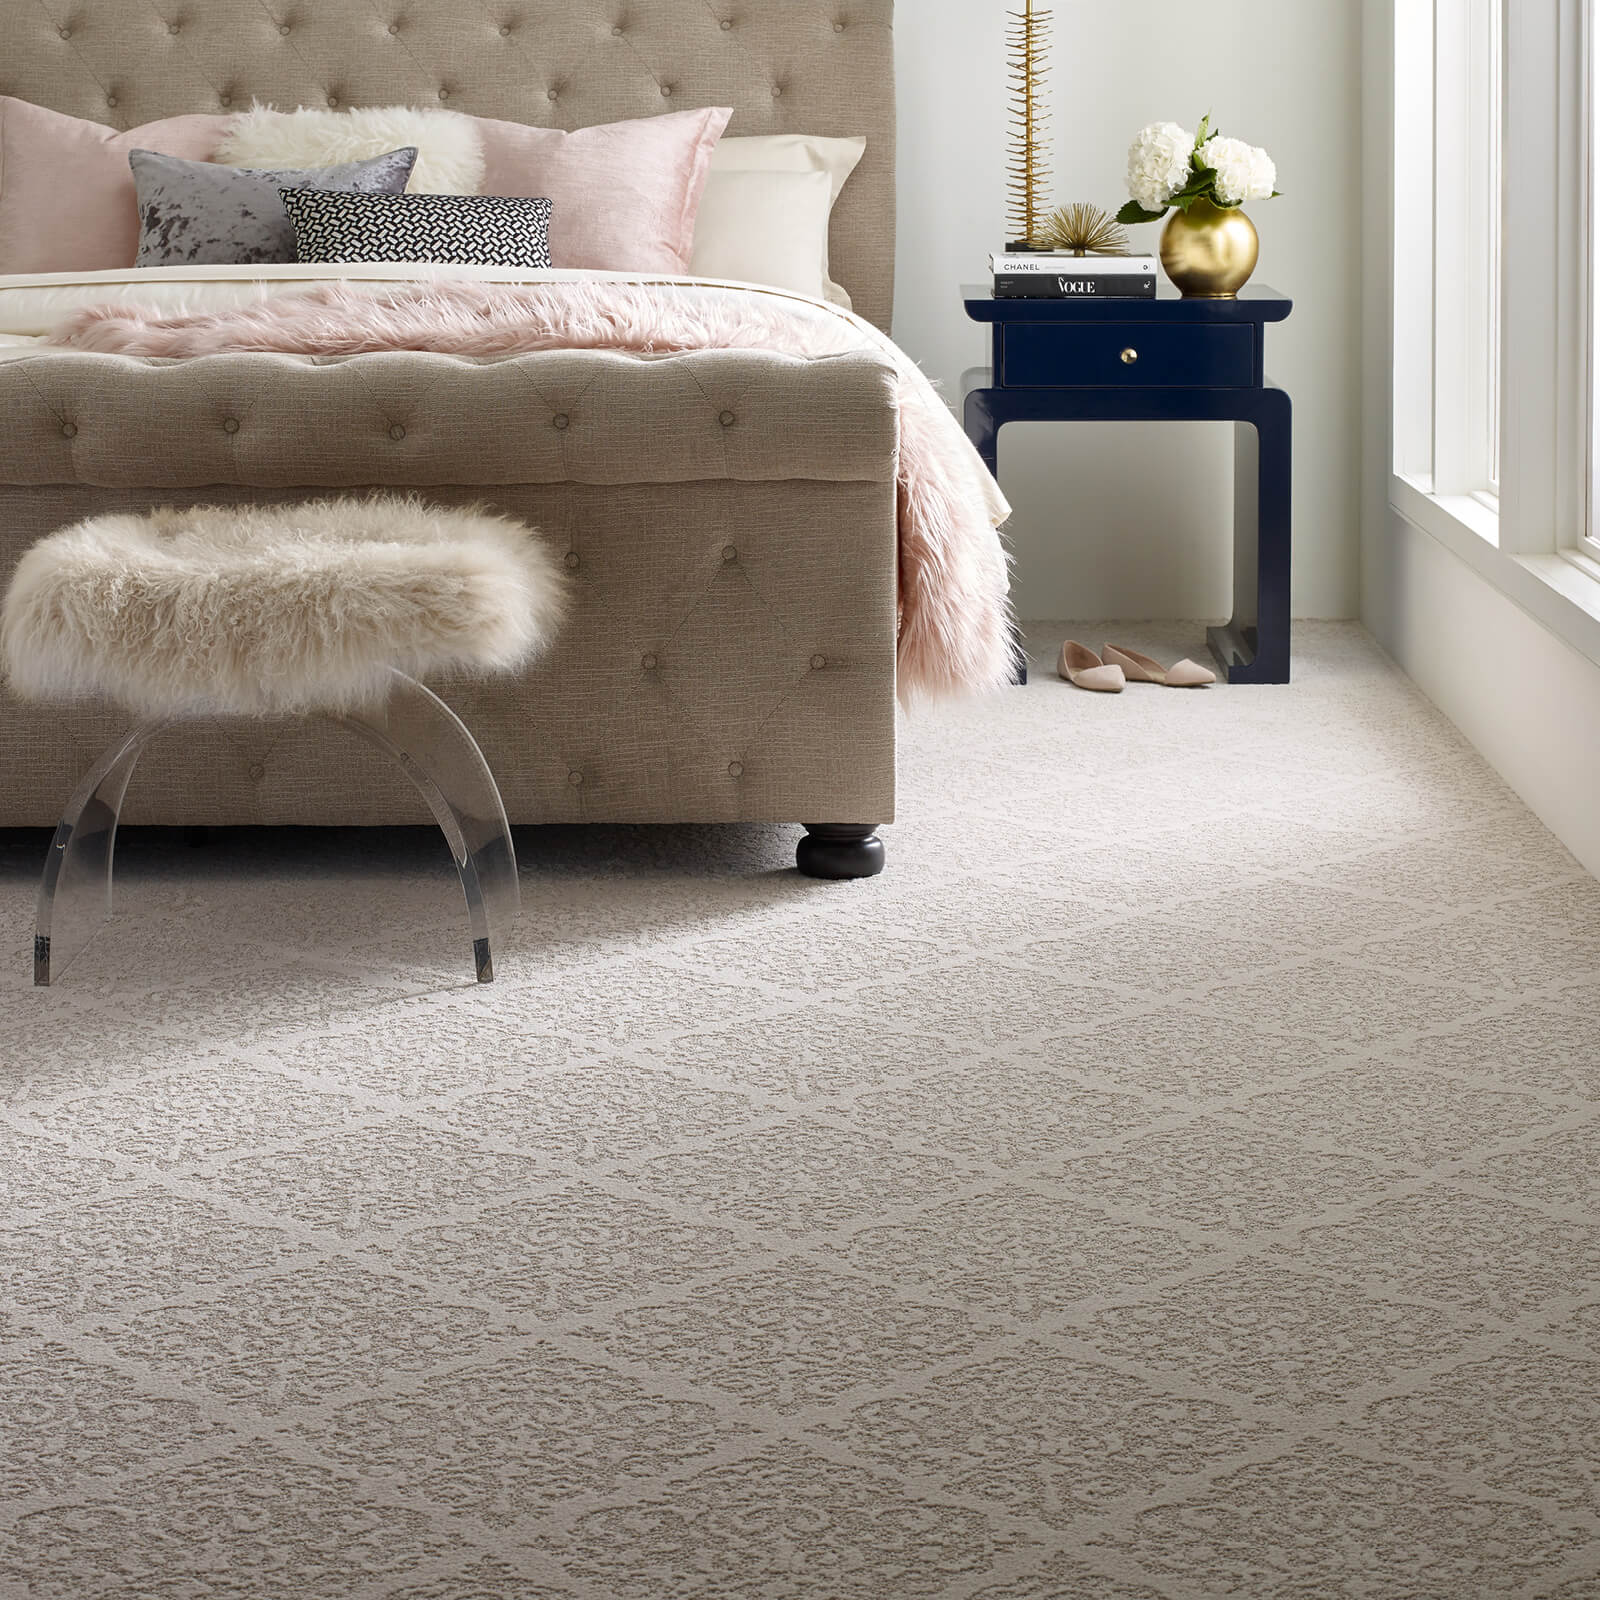 Bedroom Carpet flooring | All Floors Design Centre